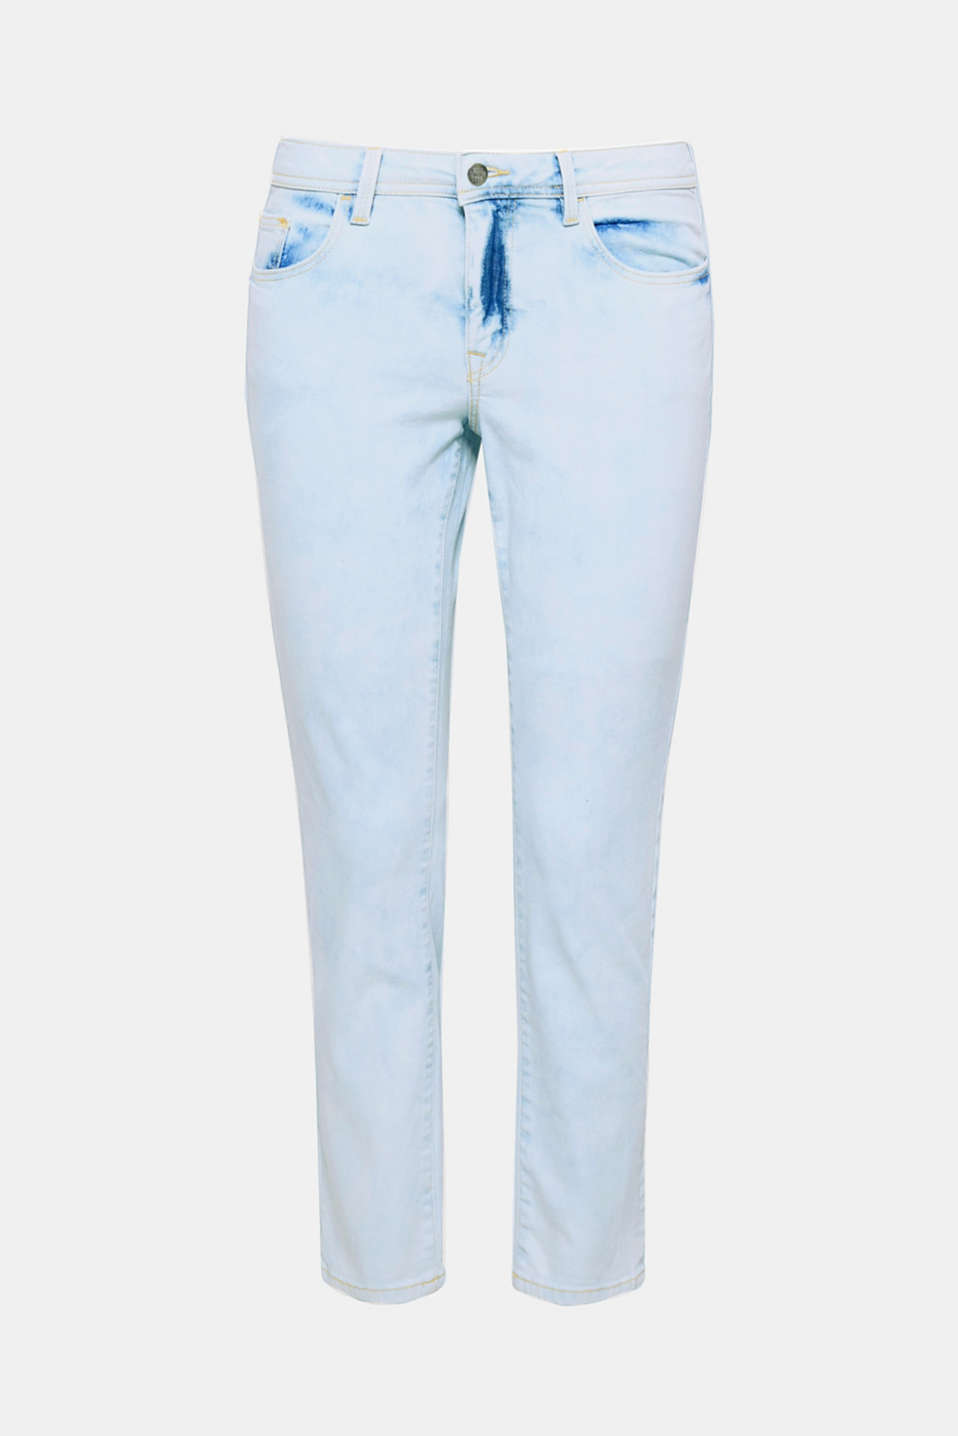 The pale garment wash in an acid style gives these jeans with a slim, cropped leg length a super cool look!